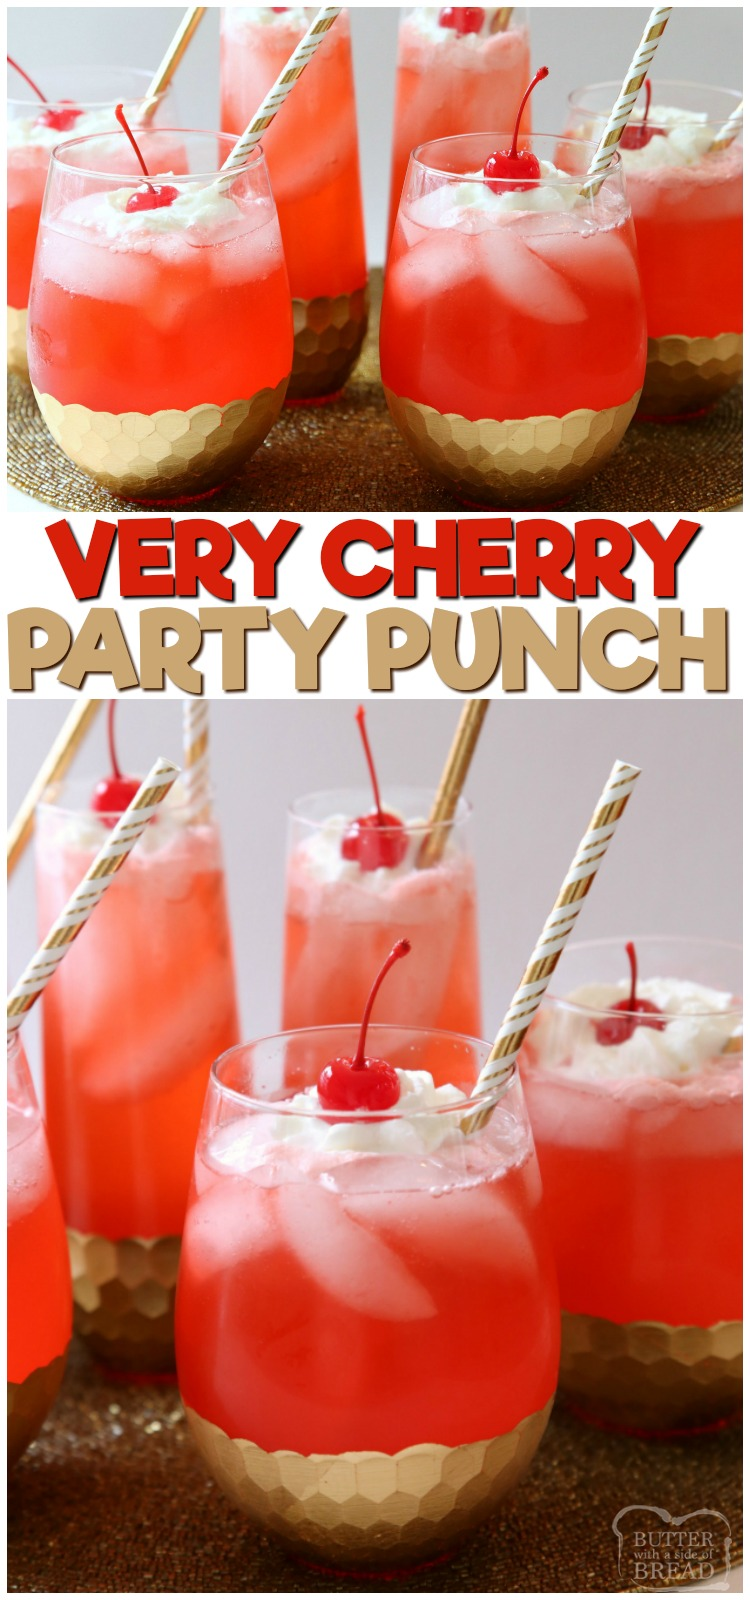 Easy Cherry Party Punch is a fun & festive party drink that everyone goes crazy over! Simple to make & has a fantastic sweet cherry flavor. #cherry #party #punch #drink #beverage #partypunch #verycherry #recipe from BUTTER WITH A SIDE OF BREAD